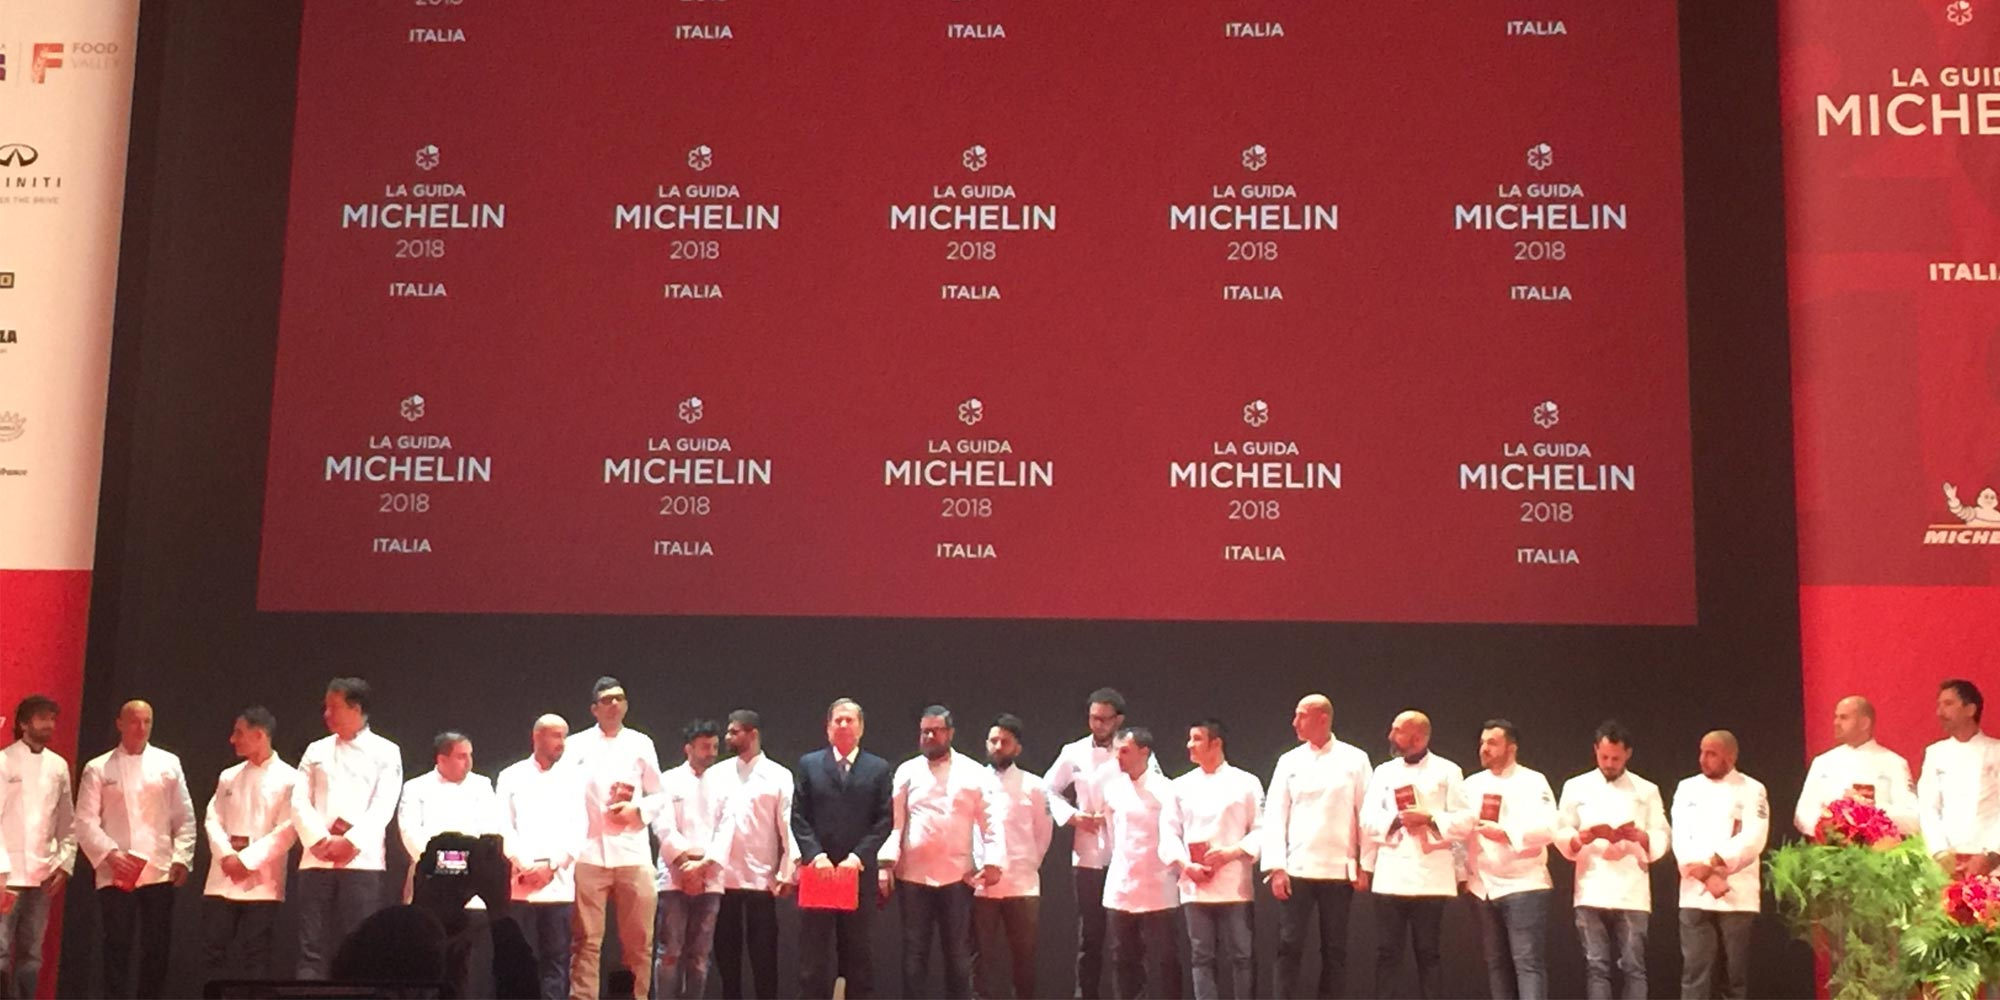 2018 MICHELIN GUIDE, CRACCO HAS BEEN PENALIZED